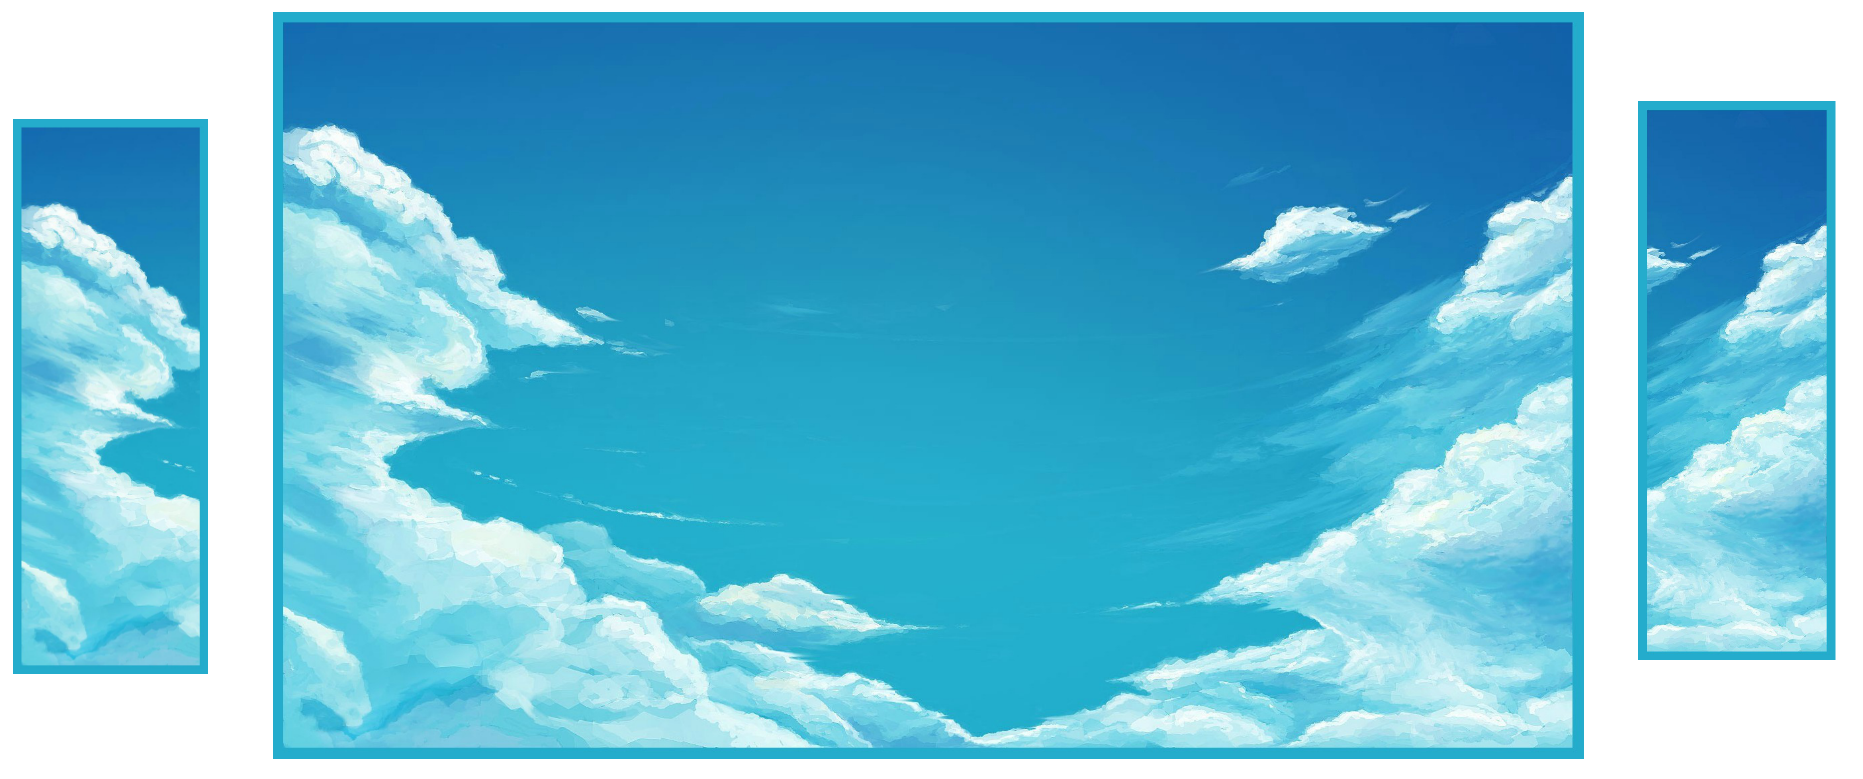 Sky and clouds png. Image drawing animal jam